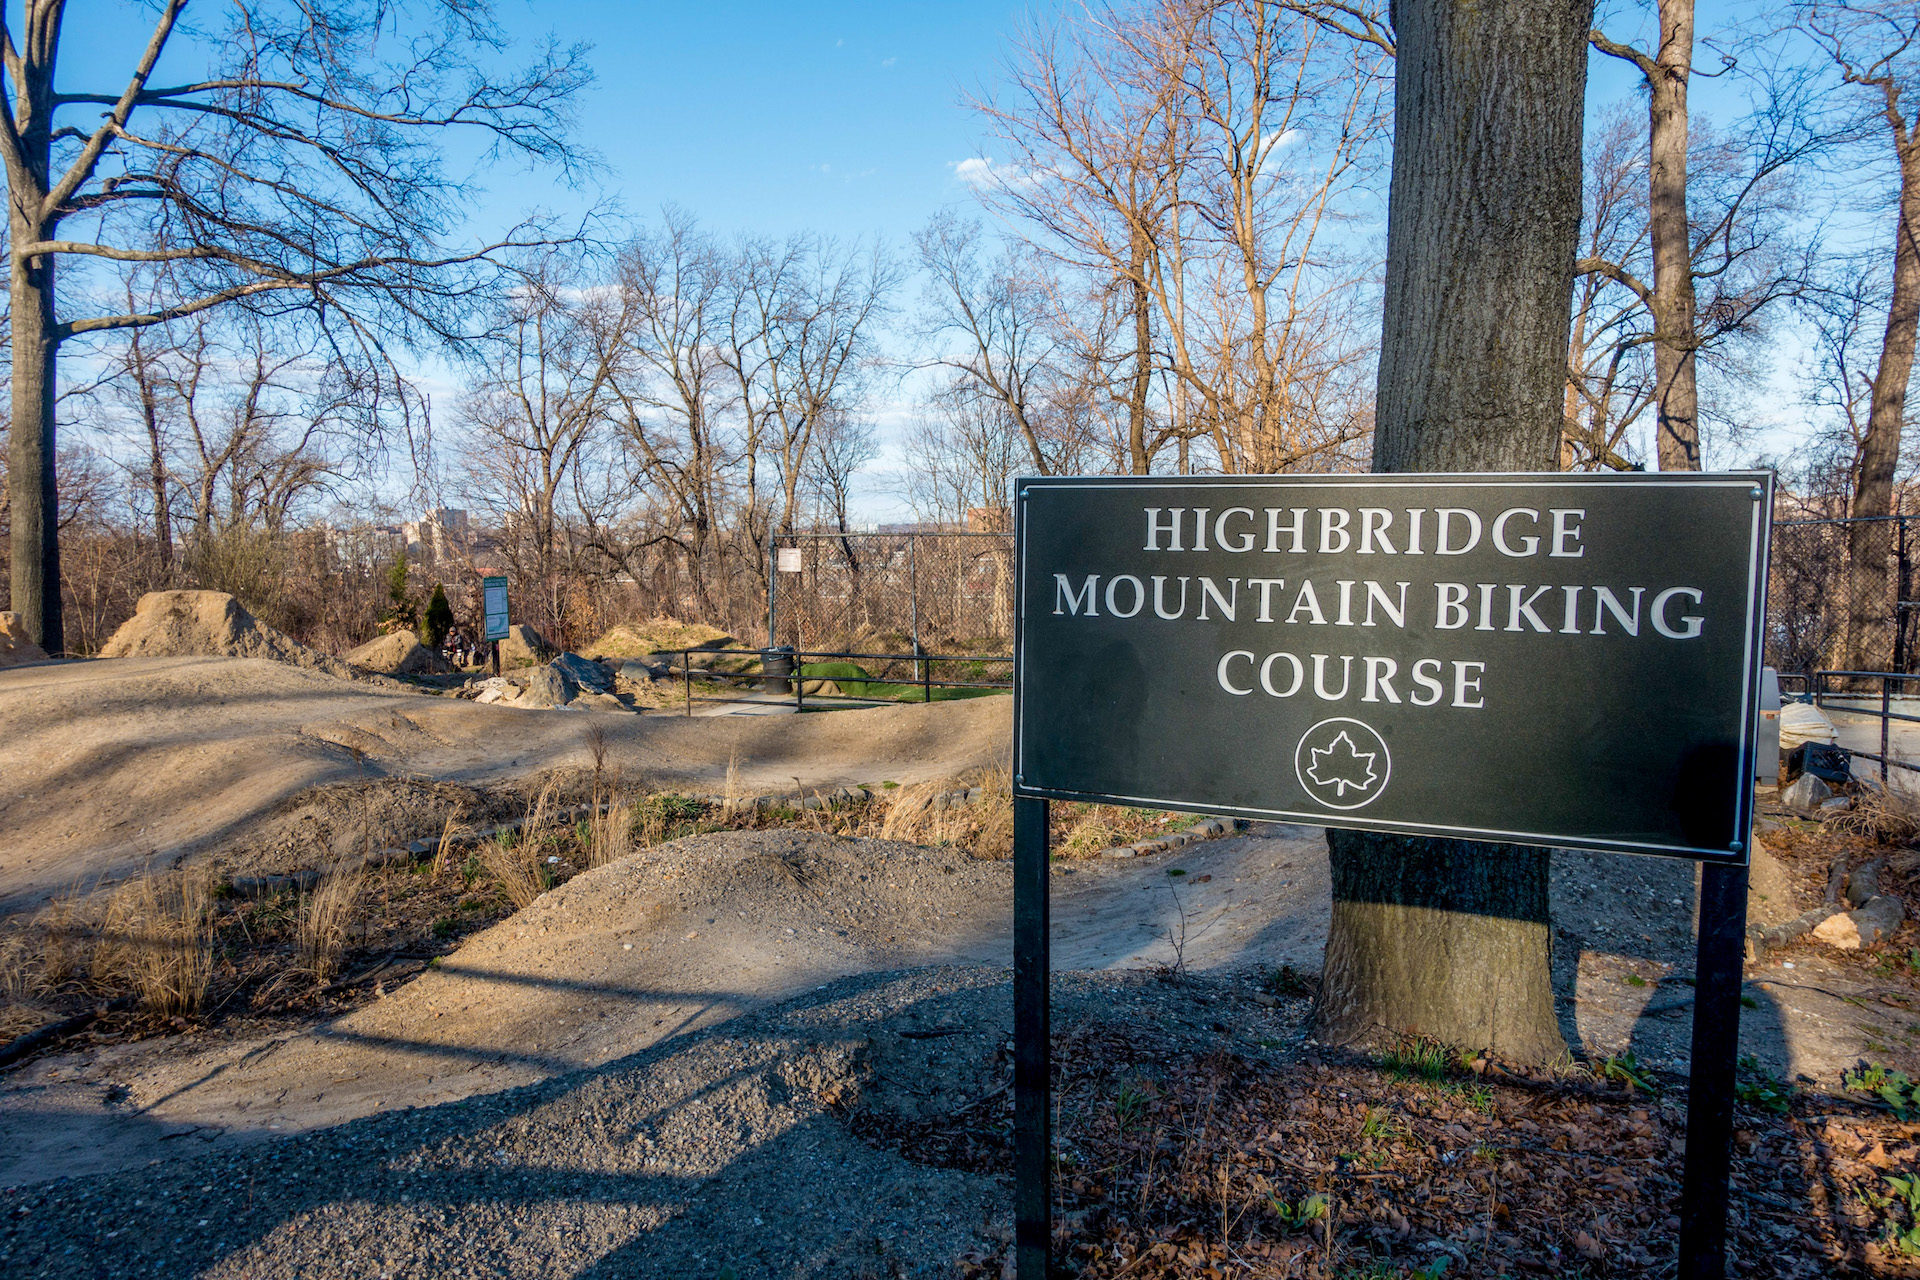 The Highbridge trail marker at the top of the hill.